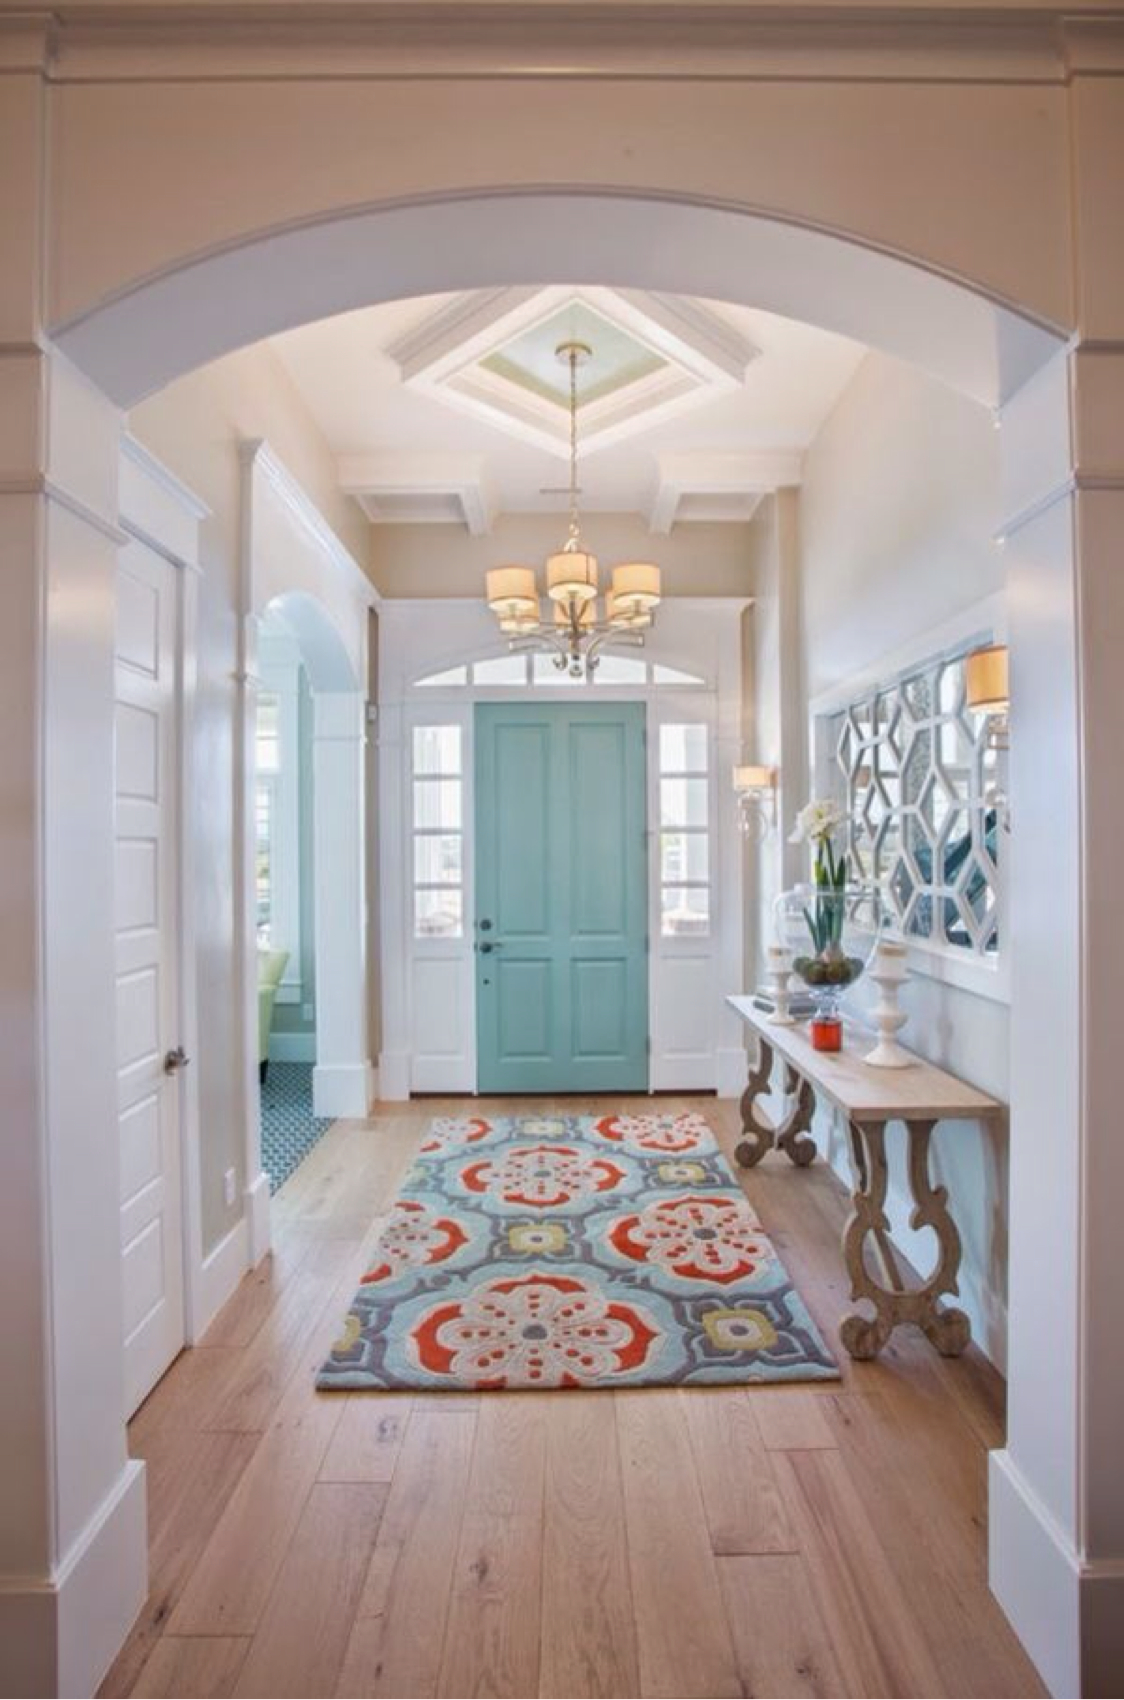 Foyer Entry : Best rustic entryway decorating ideas and designs for